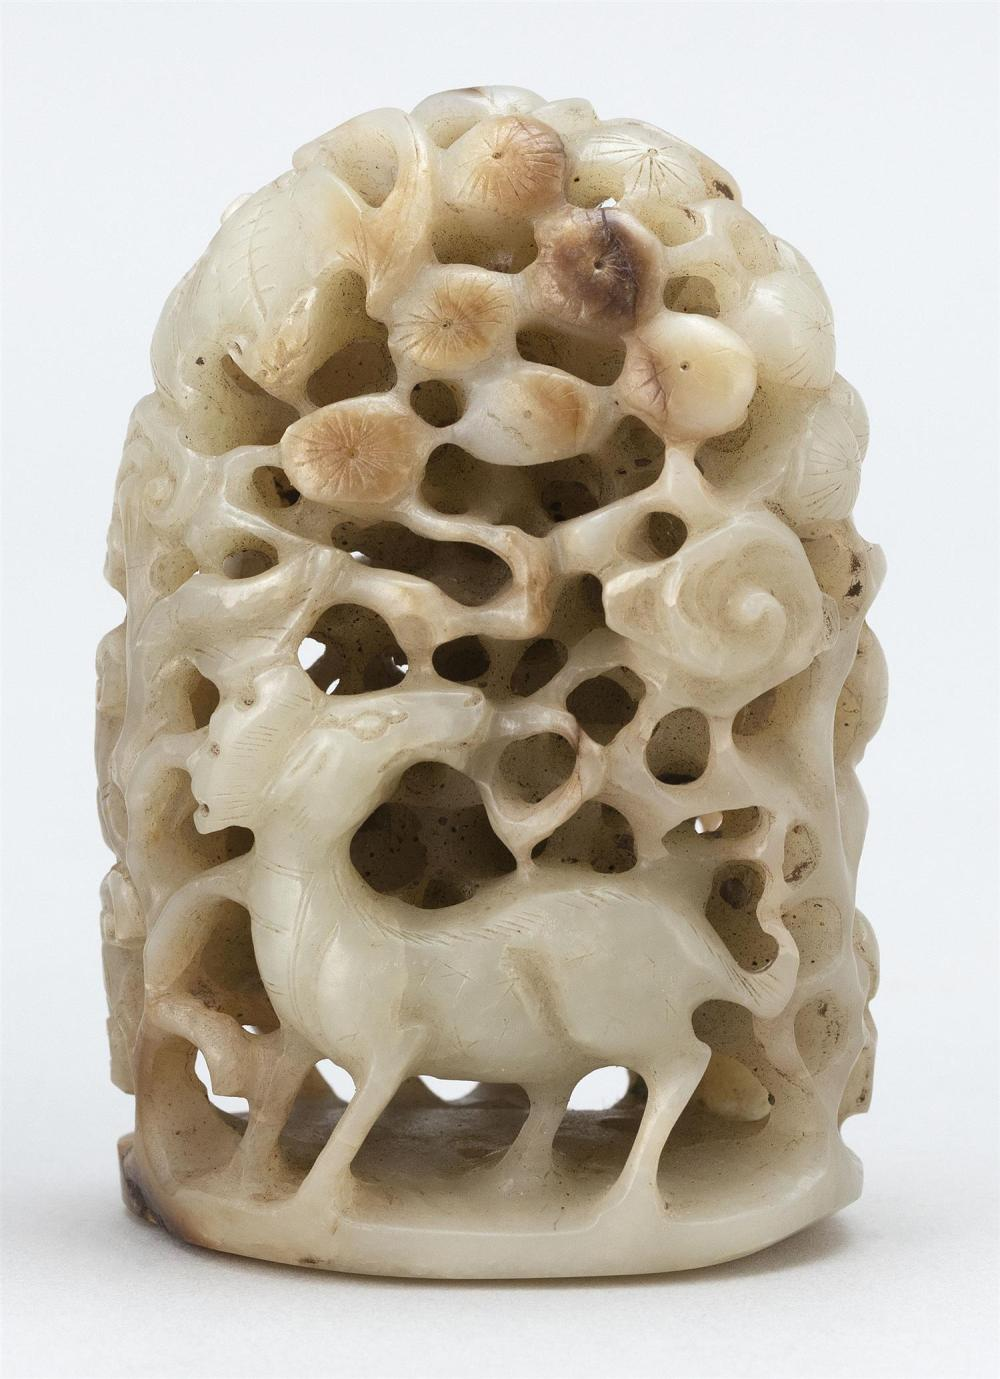 GRAY AND RUSSET JADE FINIAL In mountain form with dramatic openwork carving of heron, millet stems, pine trees, mushrooms, deer and...